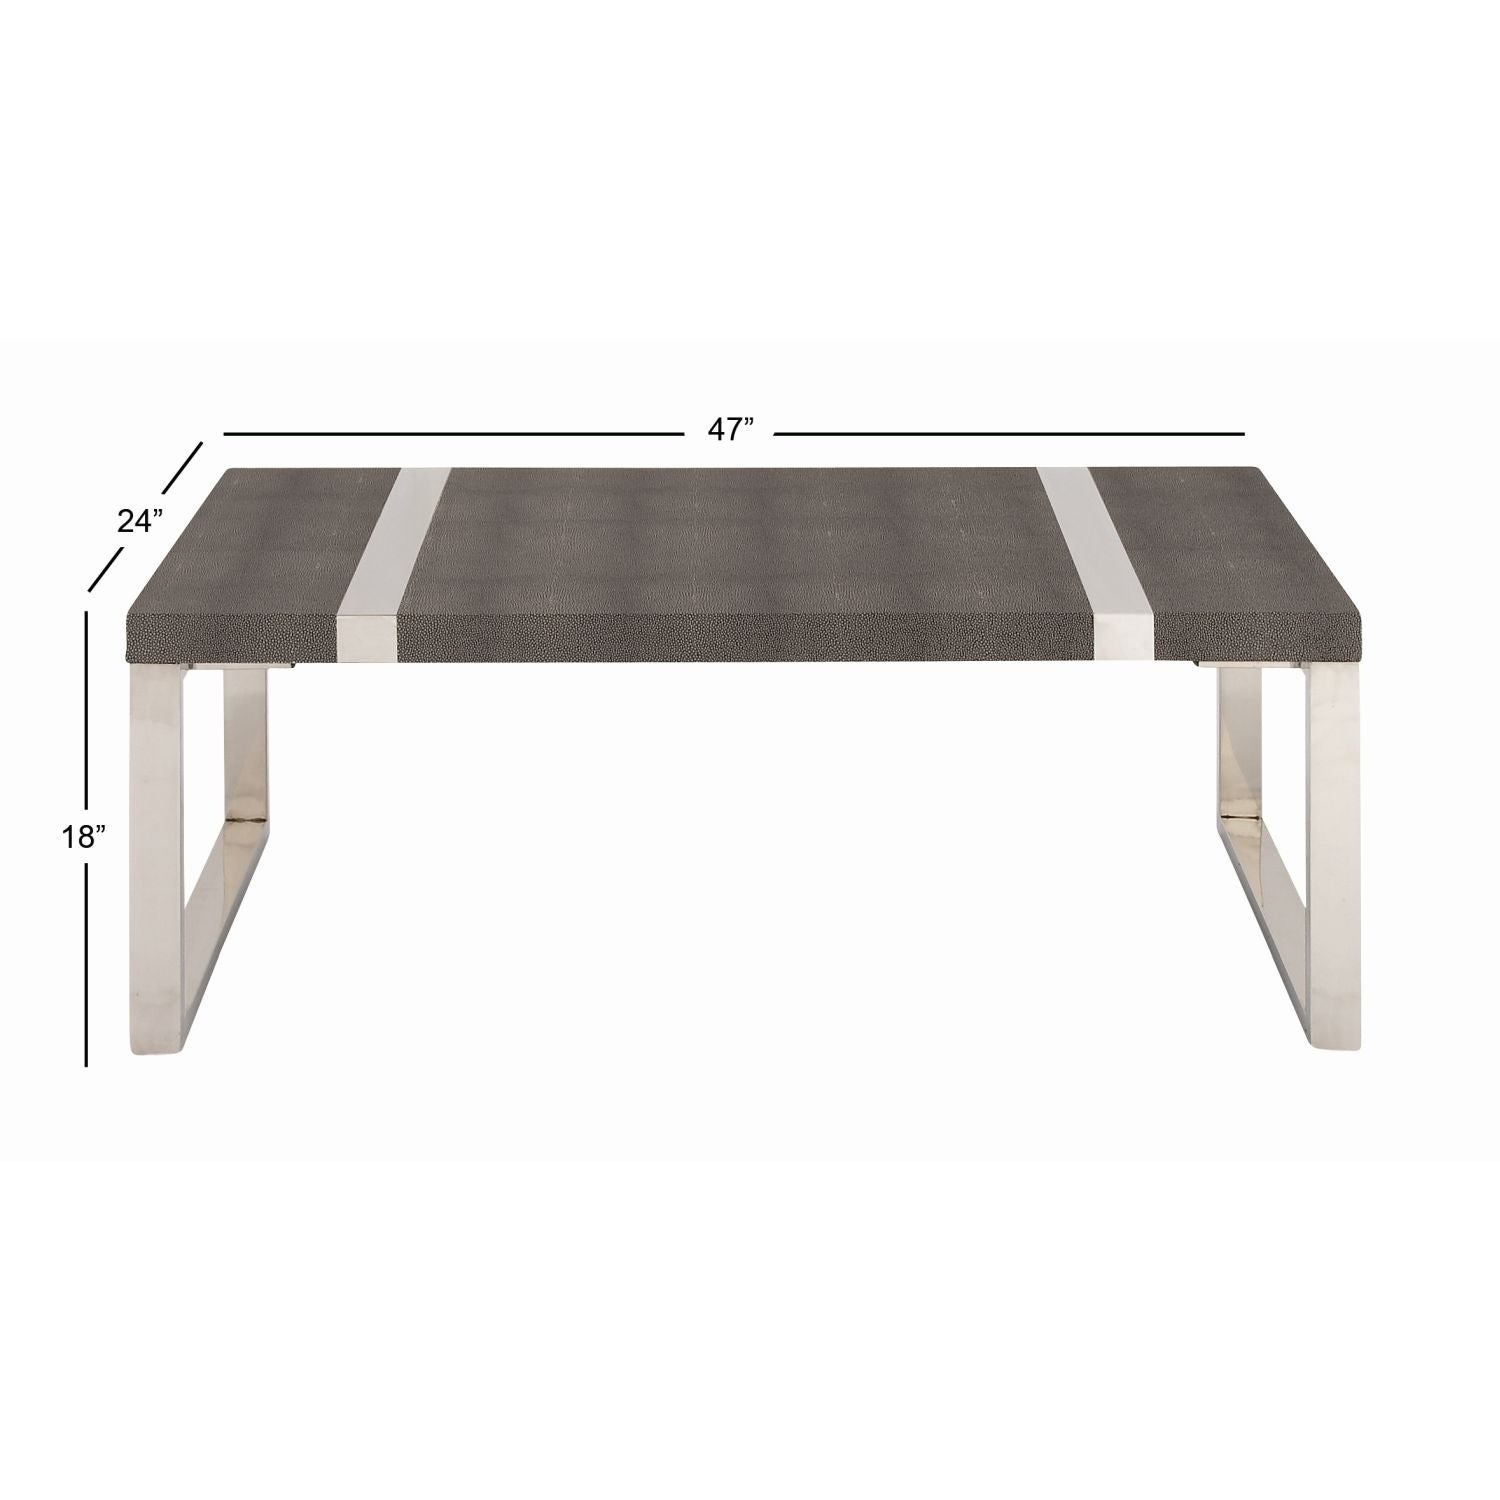 Studio 350 Stainless Steel Wood Coffee Table 47 Inches Wide 18 High Free Shipping Today 17240727